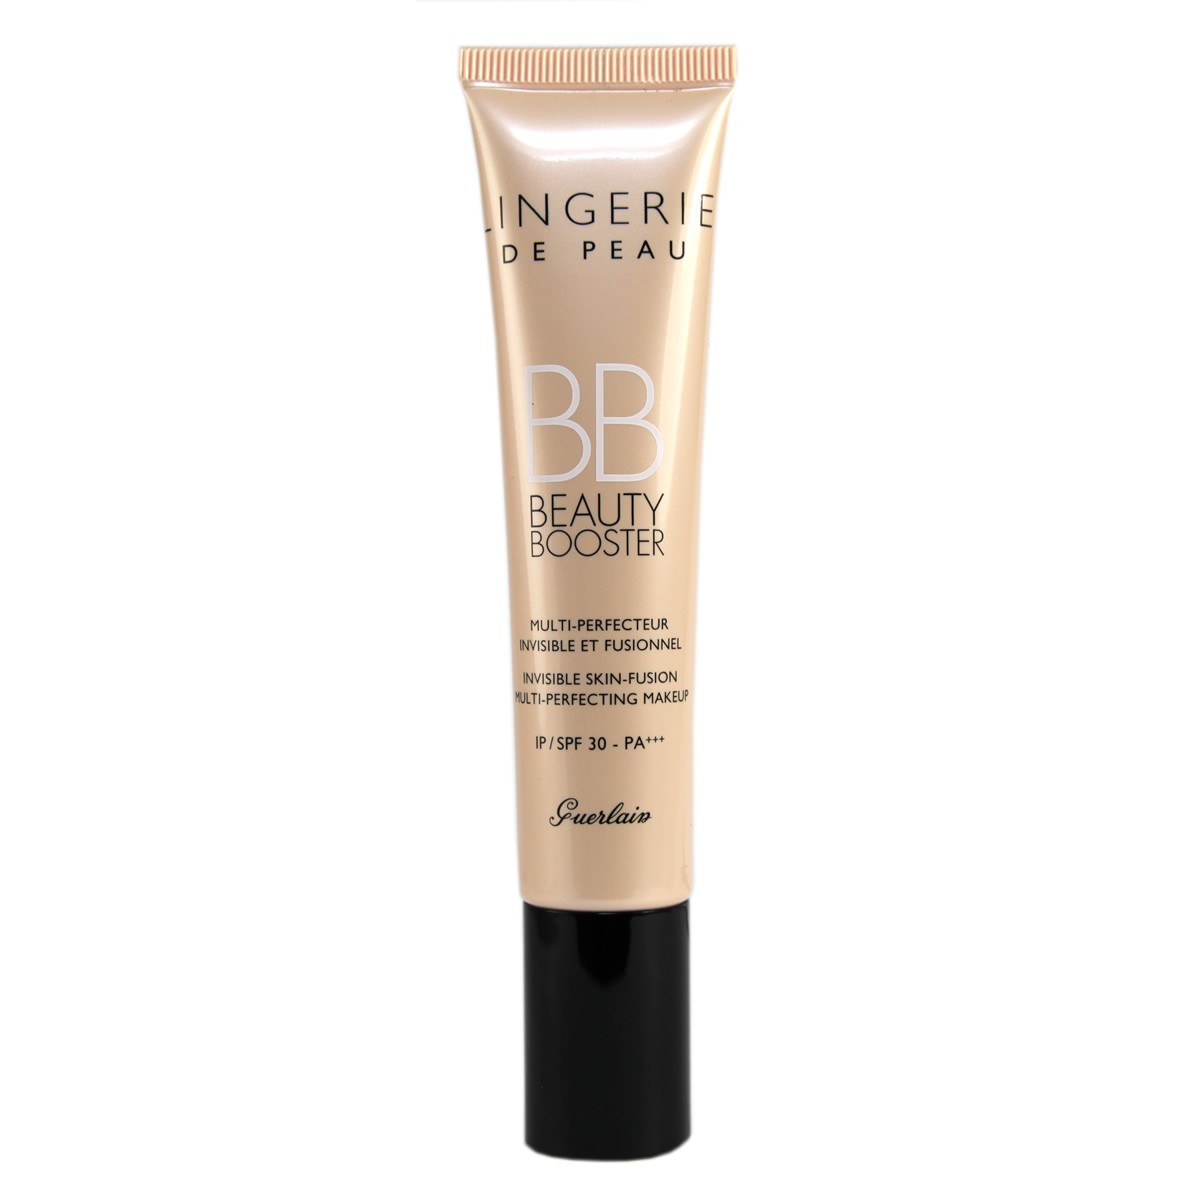 Guerlain Lingerie De Peau BB Beauty Booster Invisible Skin-Fusion Multi-Perfecting Makeup